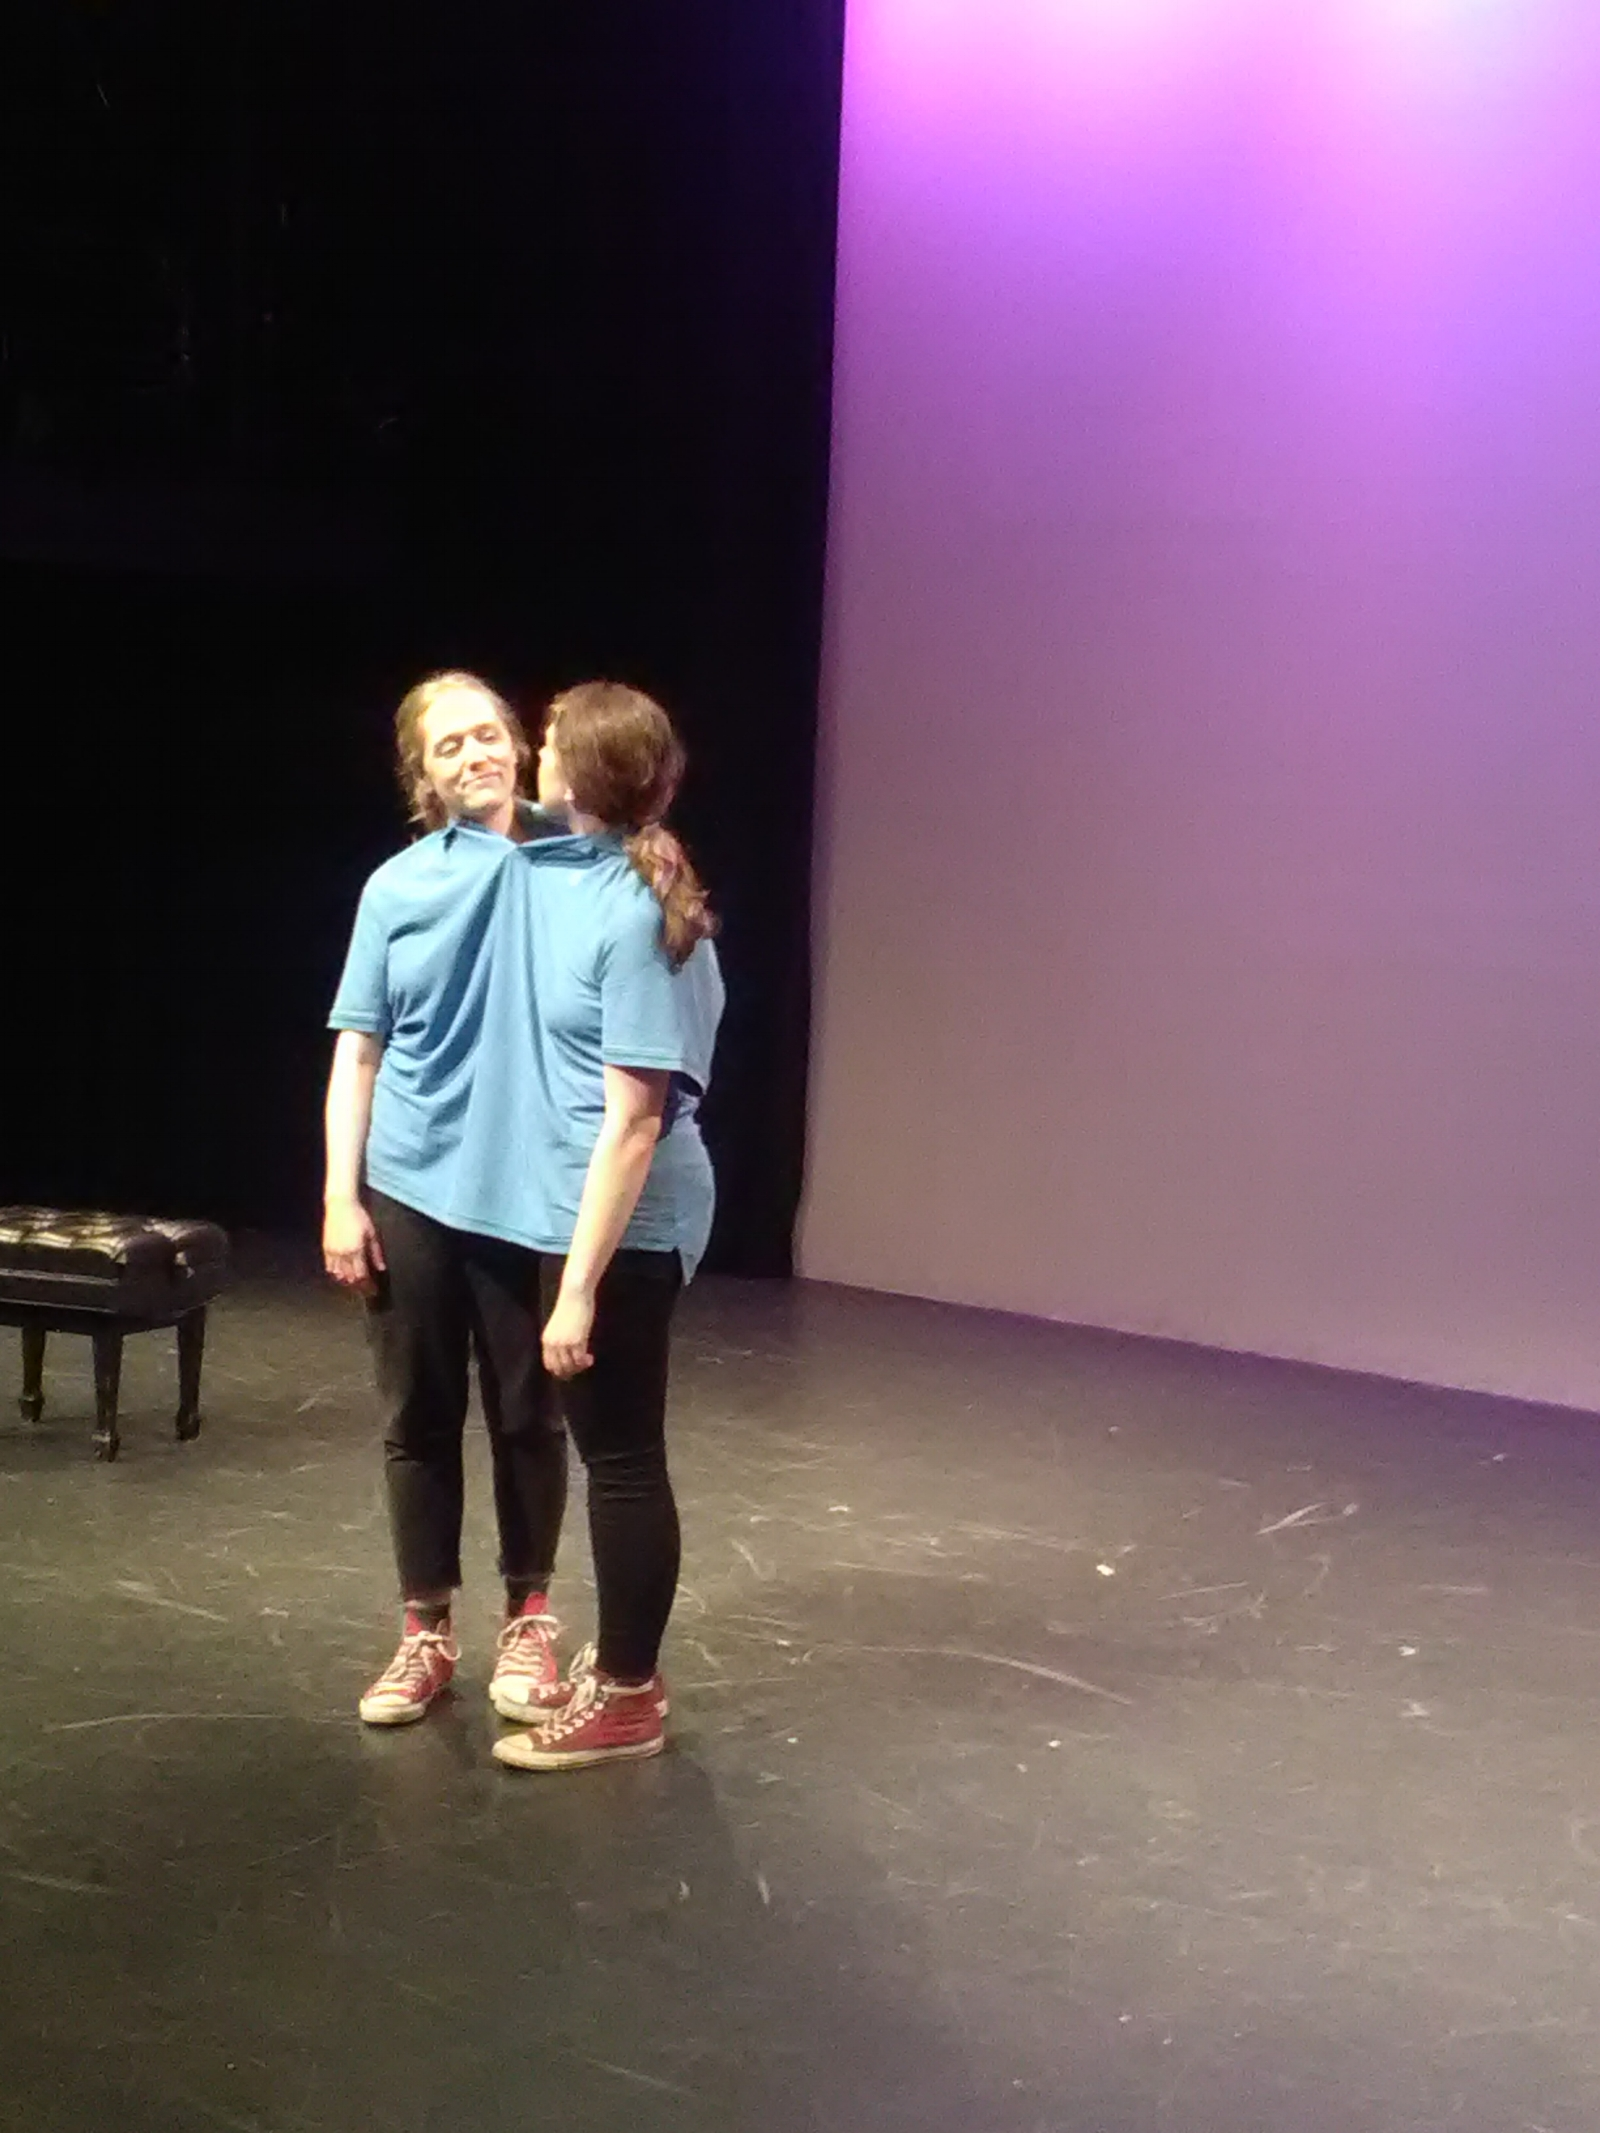 As Happy, with Julia Larsen as Biff, in  The Same Shirt Show.  Performed at Dixon Place in February 2018.